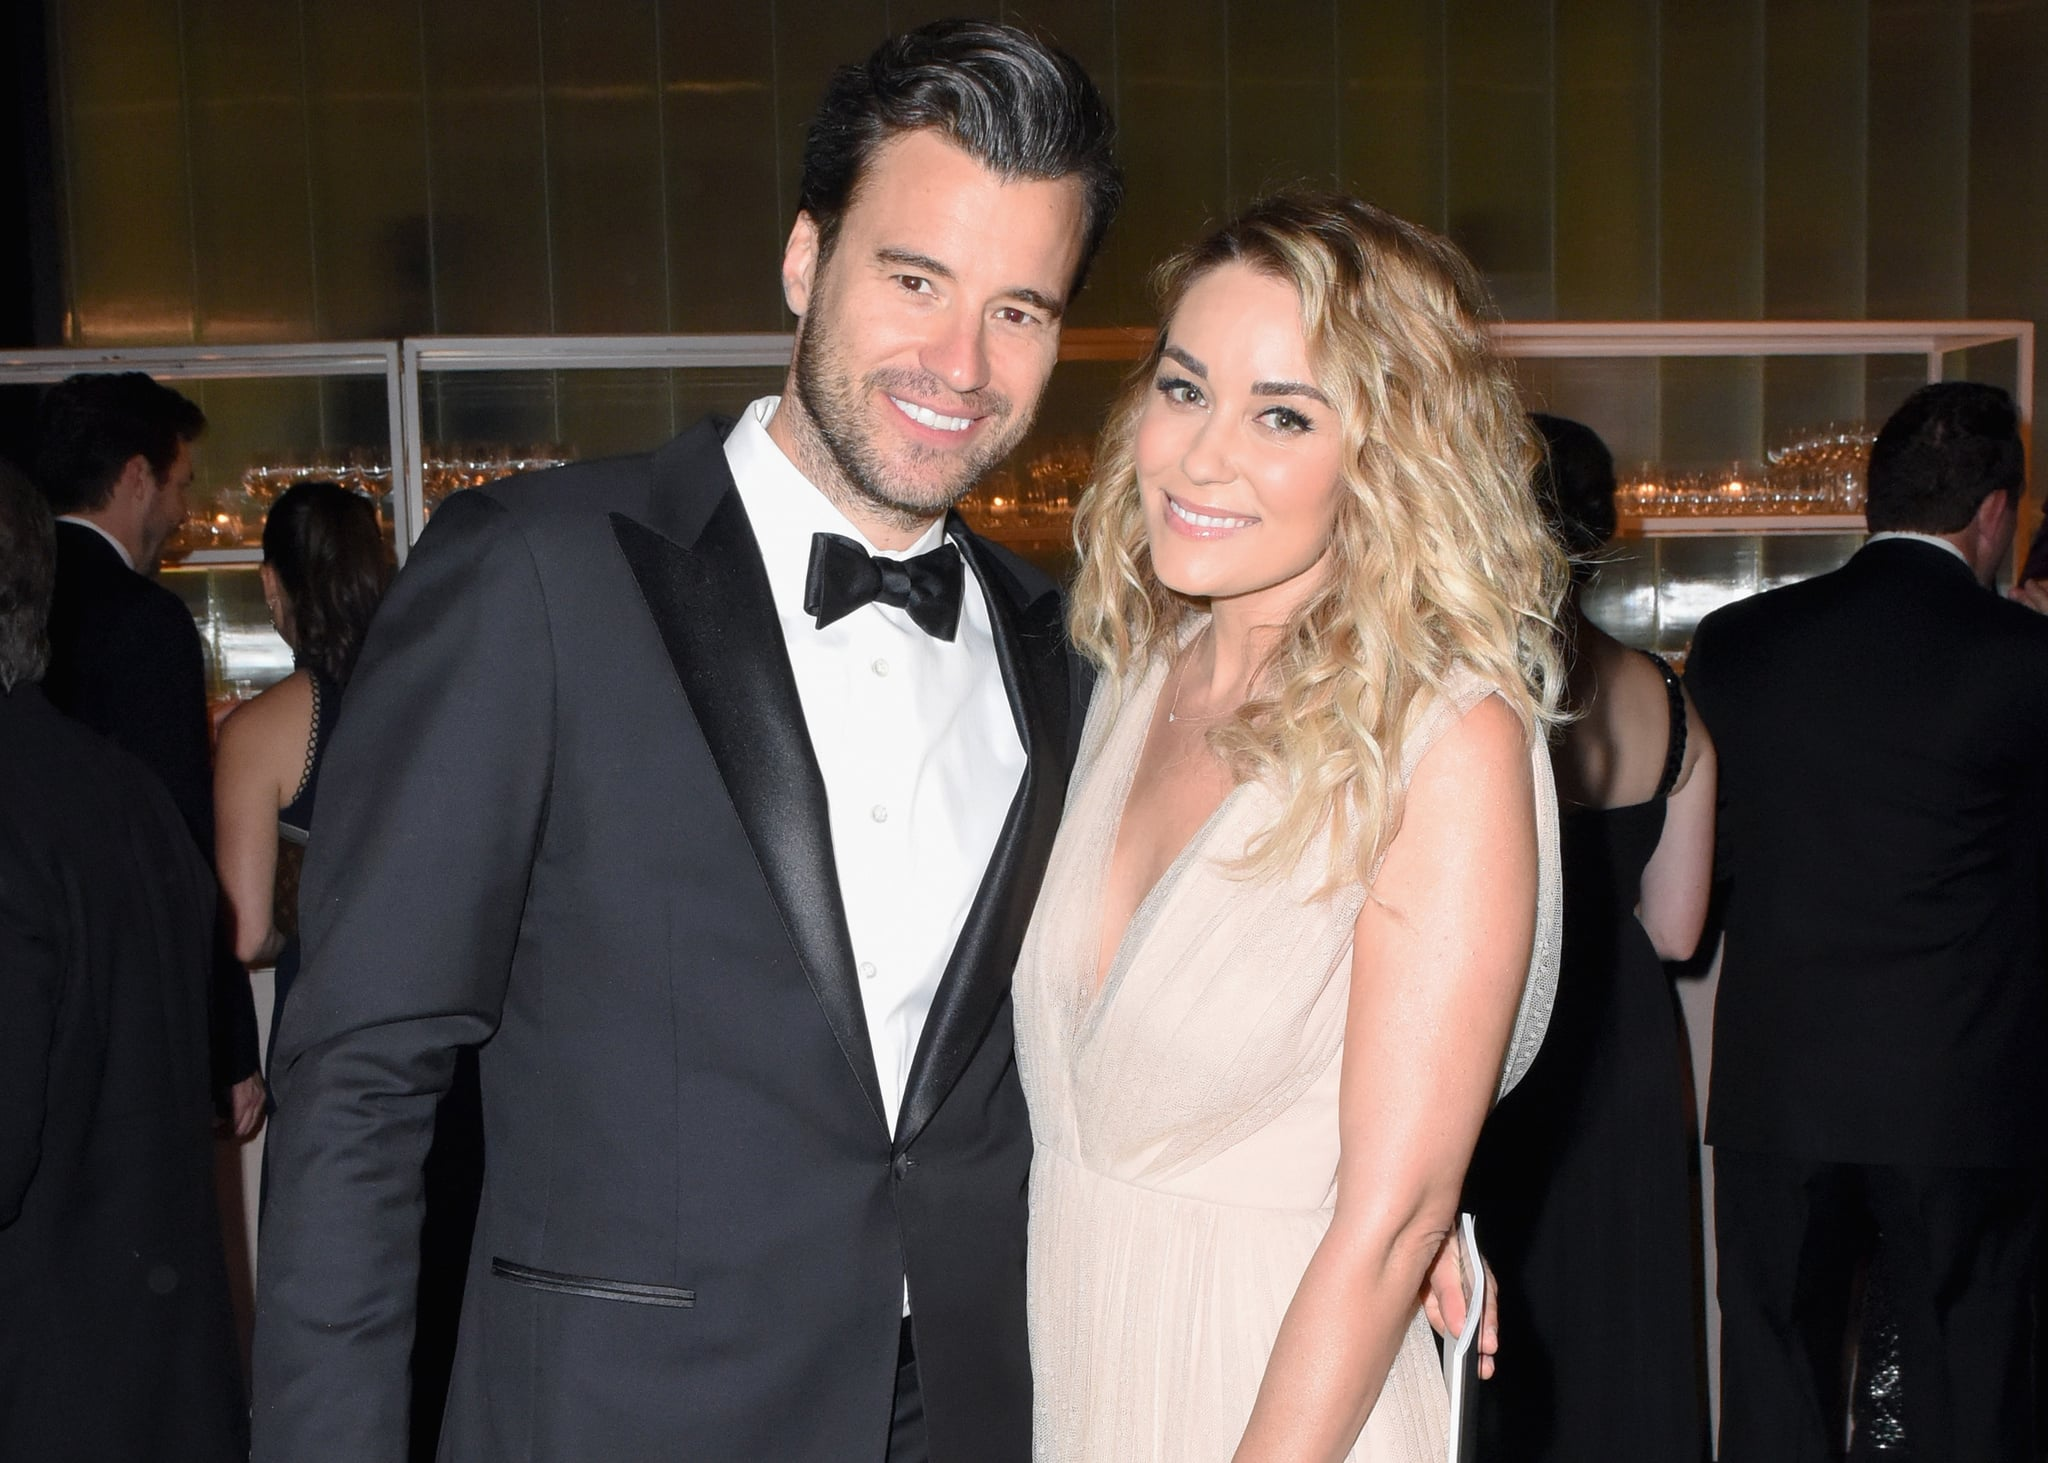 Lauren Conrad Welcomes Her Second Child With William Tell, and Her Announcement Is So Cute